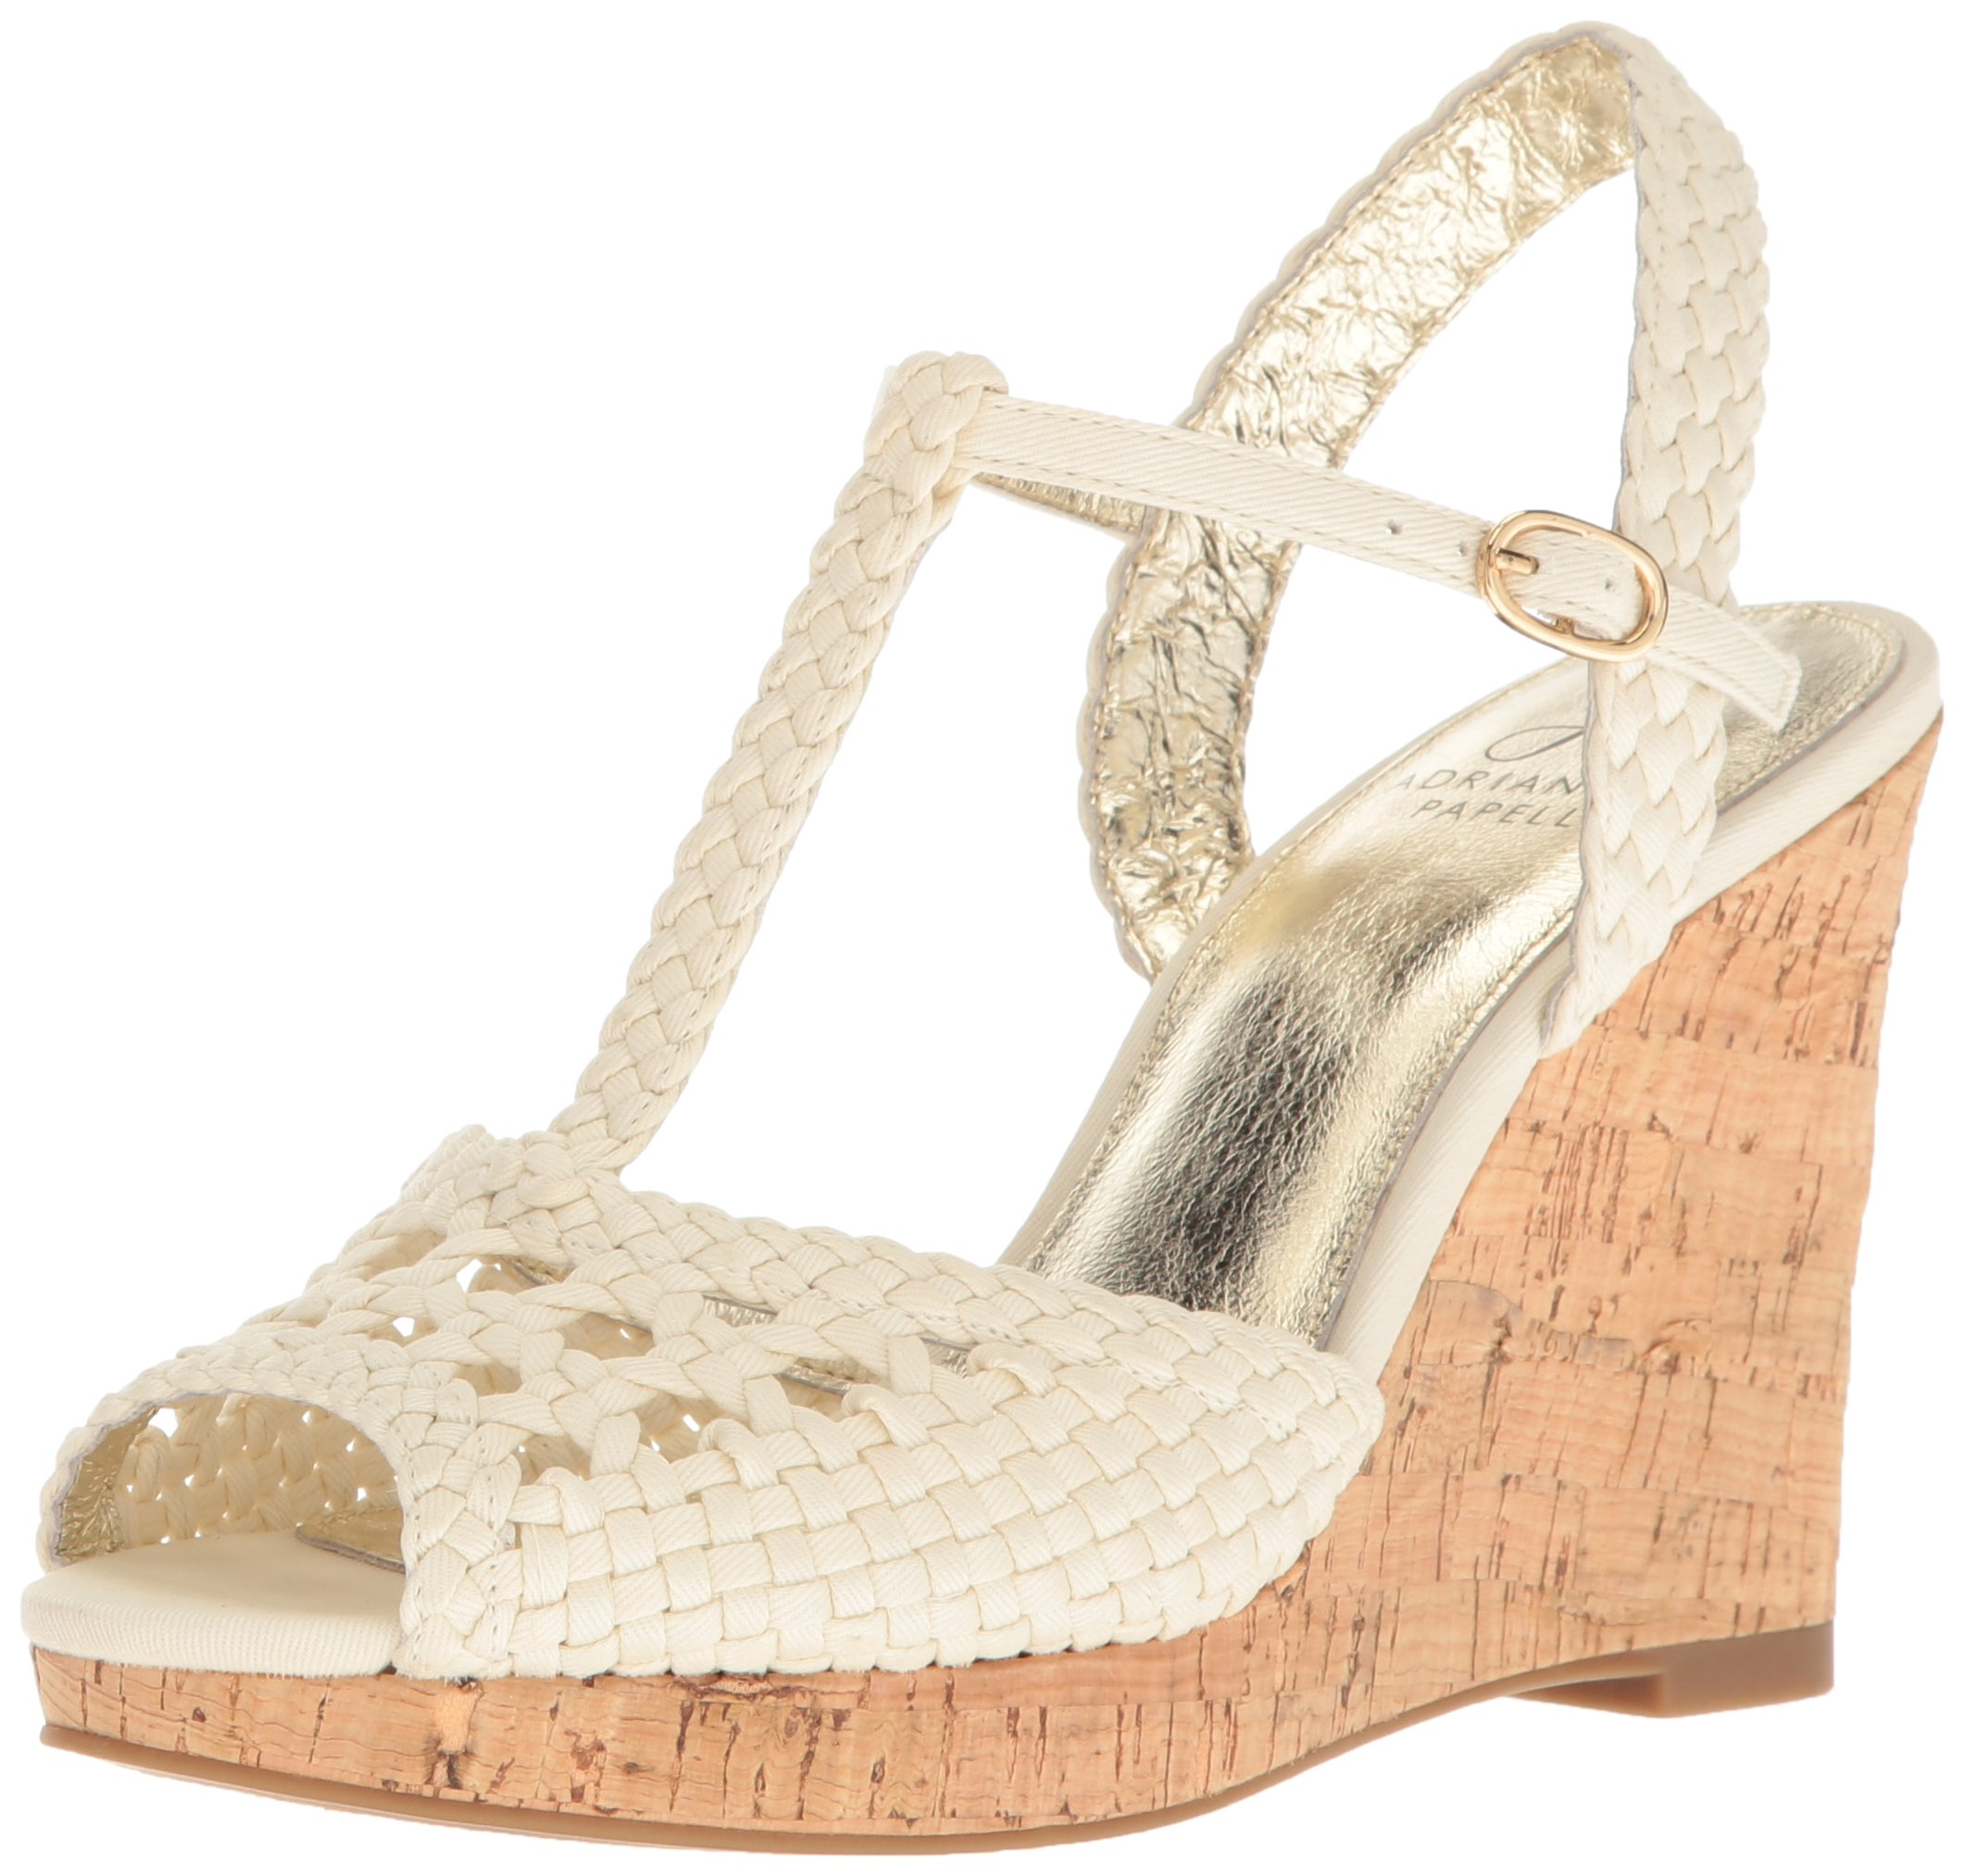 Adrianna Papell Women's Franklin Wedge Sandal, Ivory, 9 M US